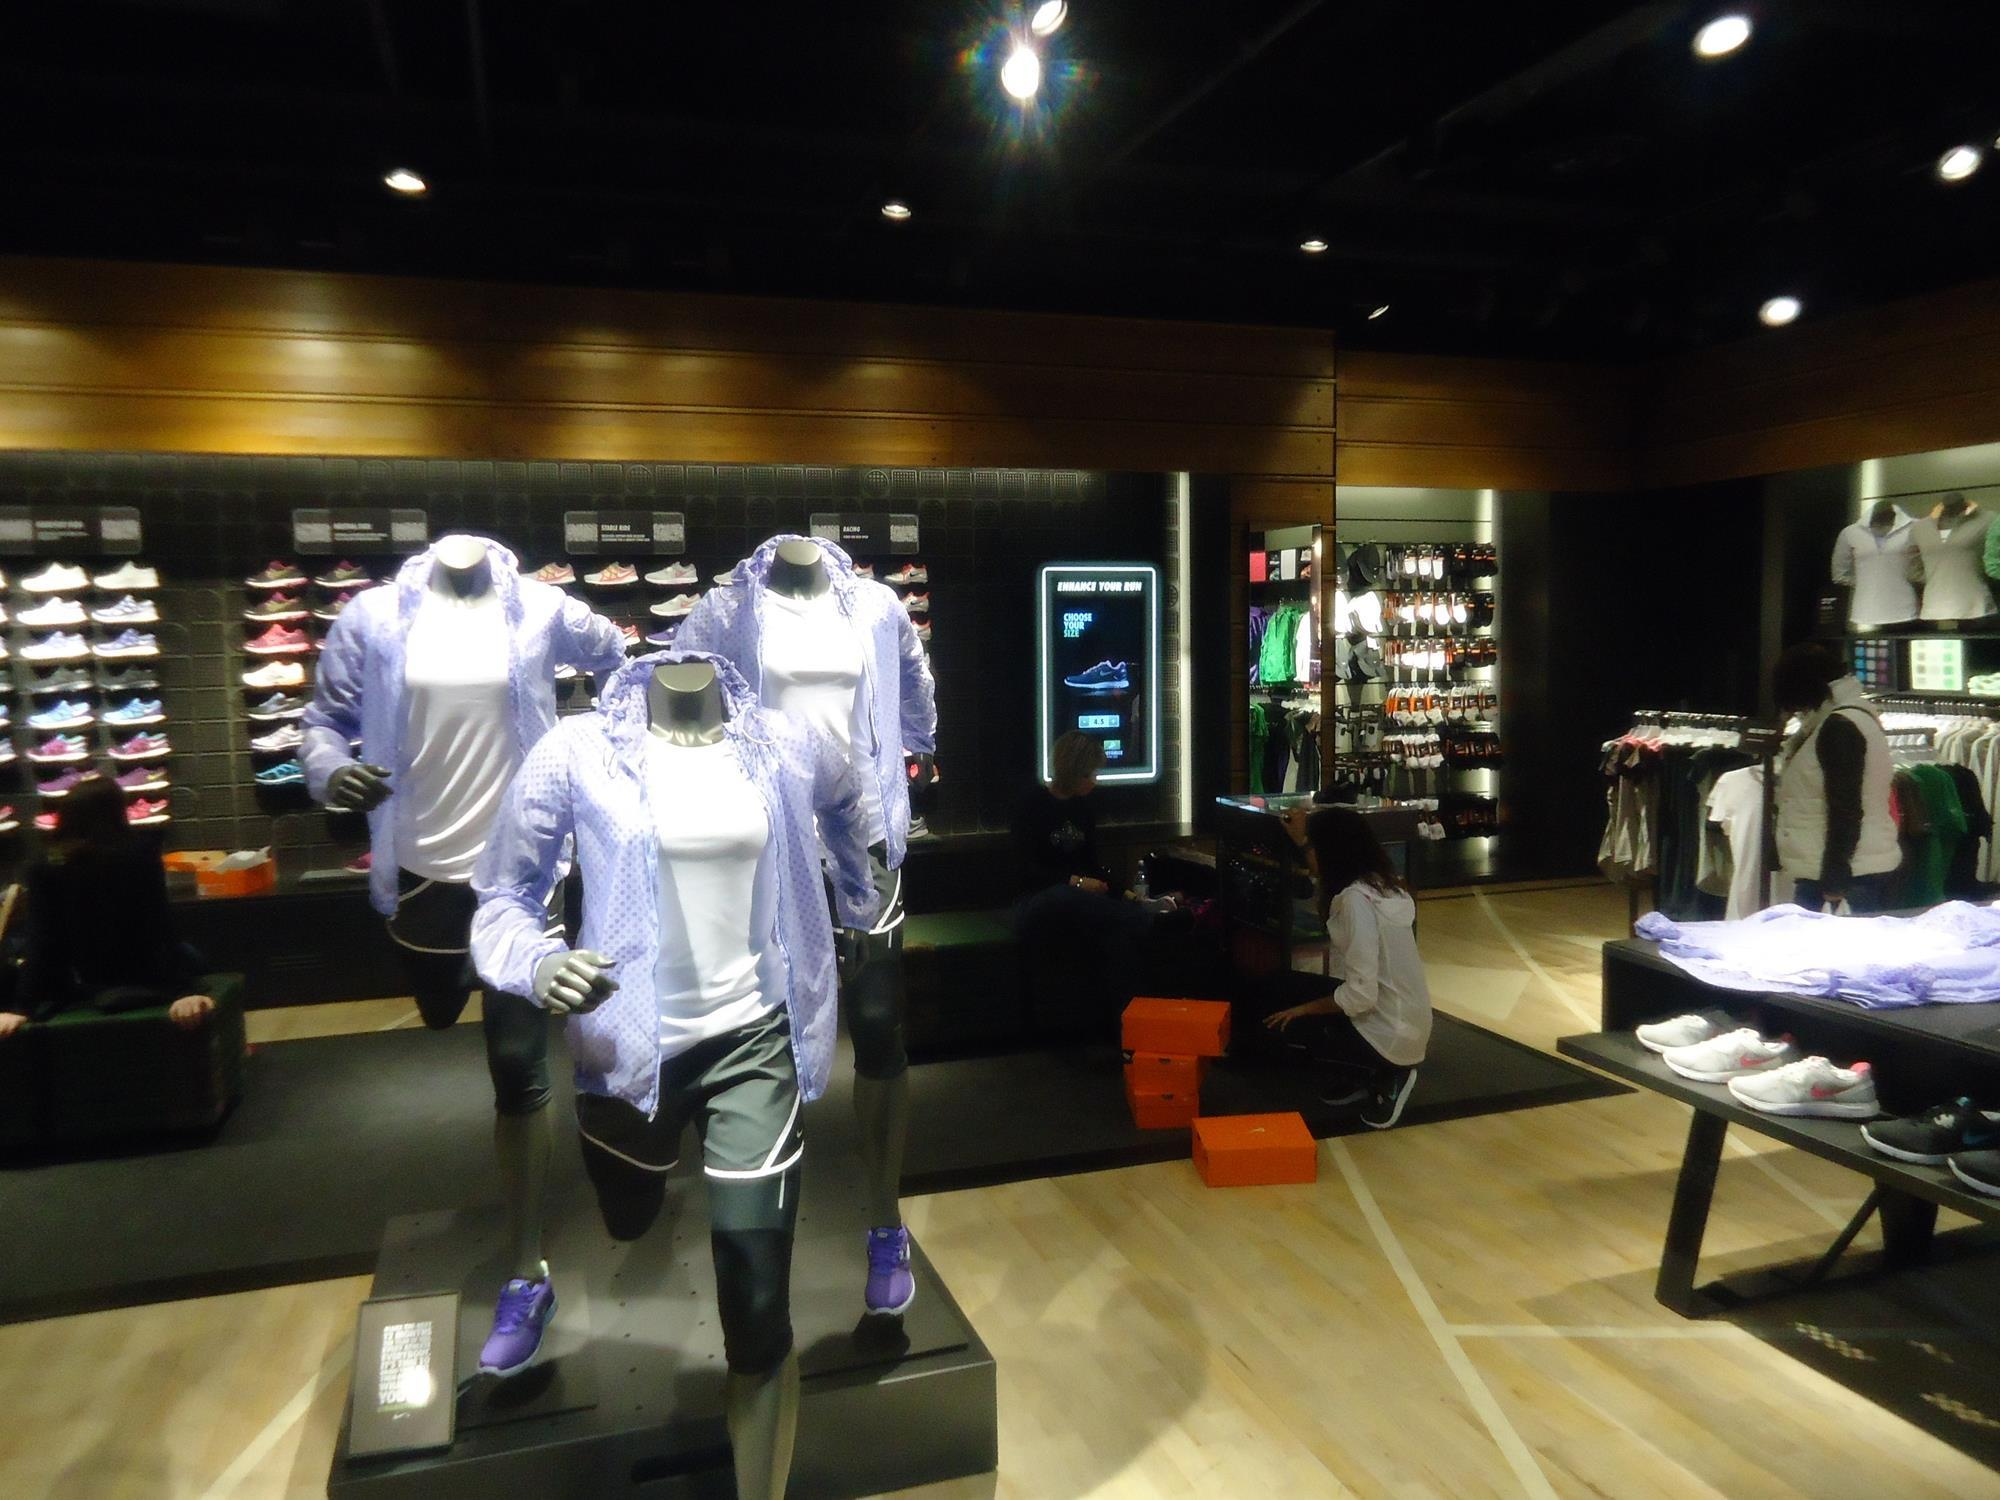 size 40 8cd87 974c6 Nike unveils revamped Westfield London store   Photo .